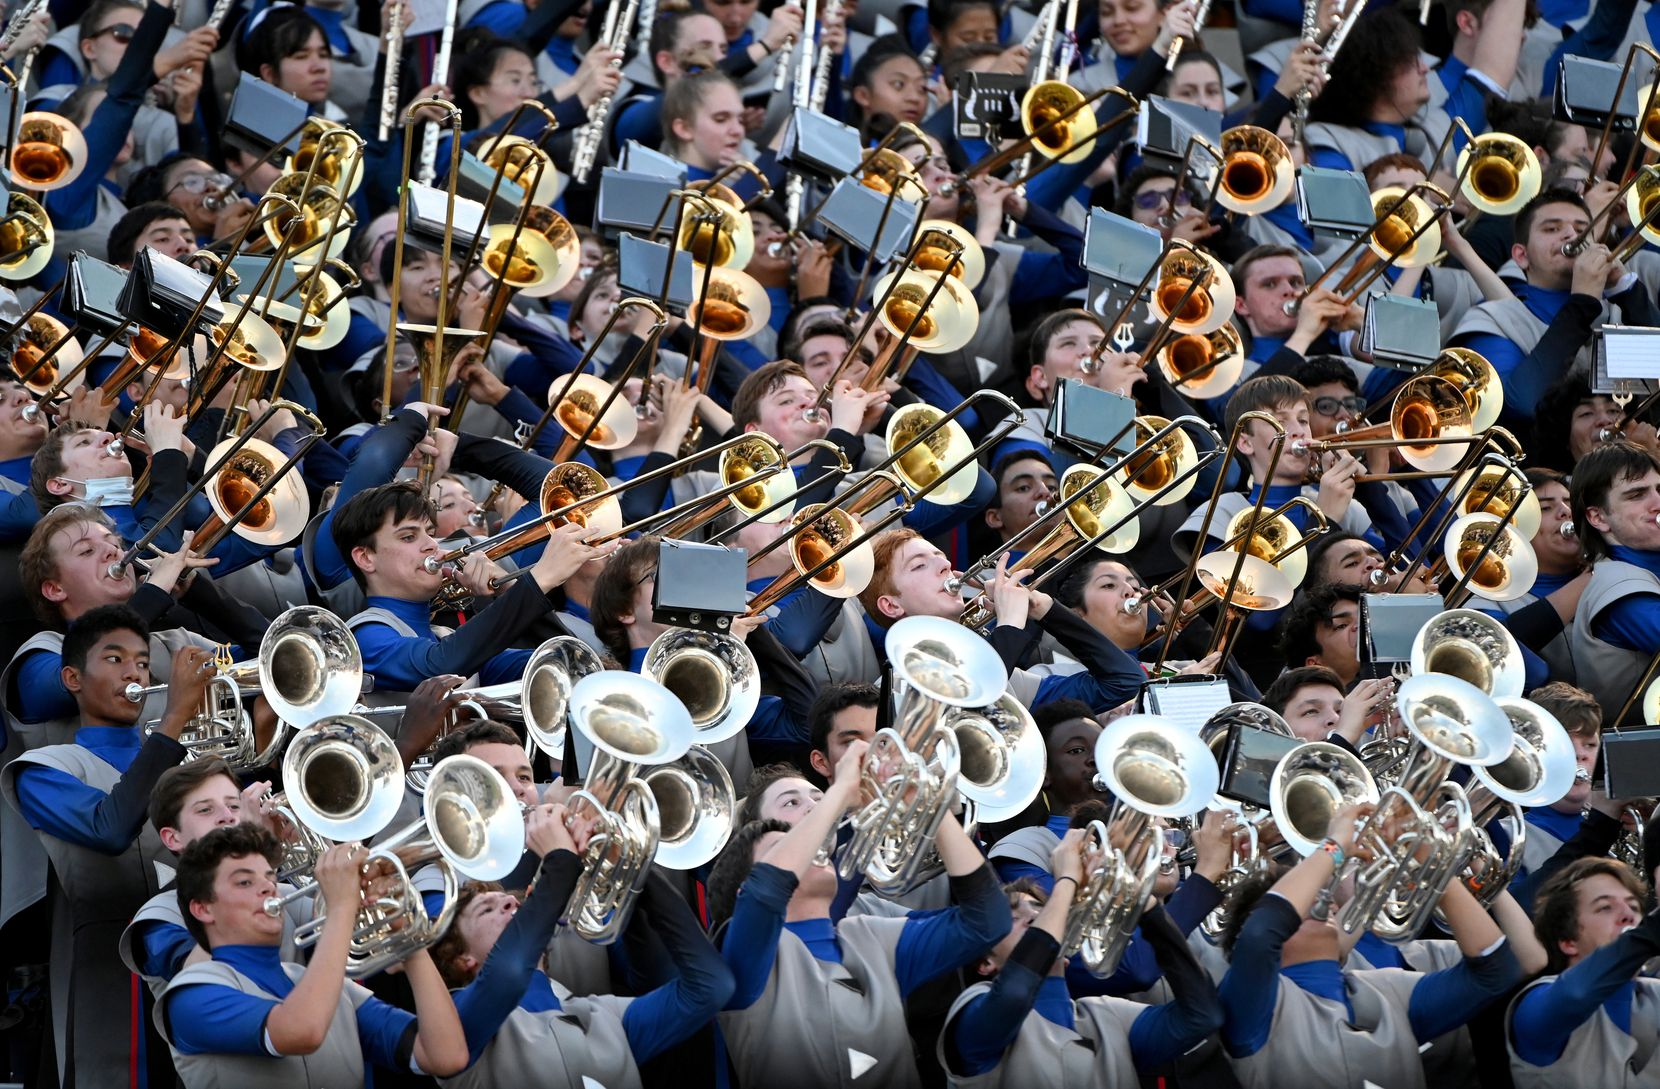 The Allen Escadrille performs in the stands during a high school football game between Plano East and Allen, Friday, Aug. 27, 2021, in Allen, Texas. (Matt Strasen/Special Contributor)